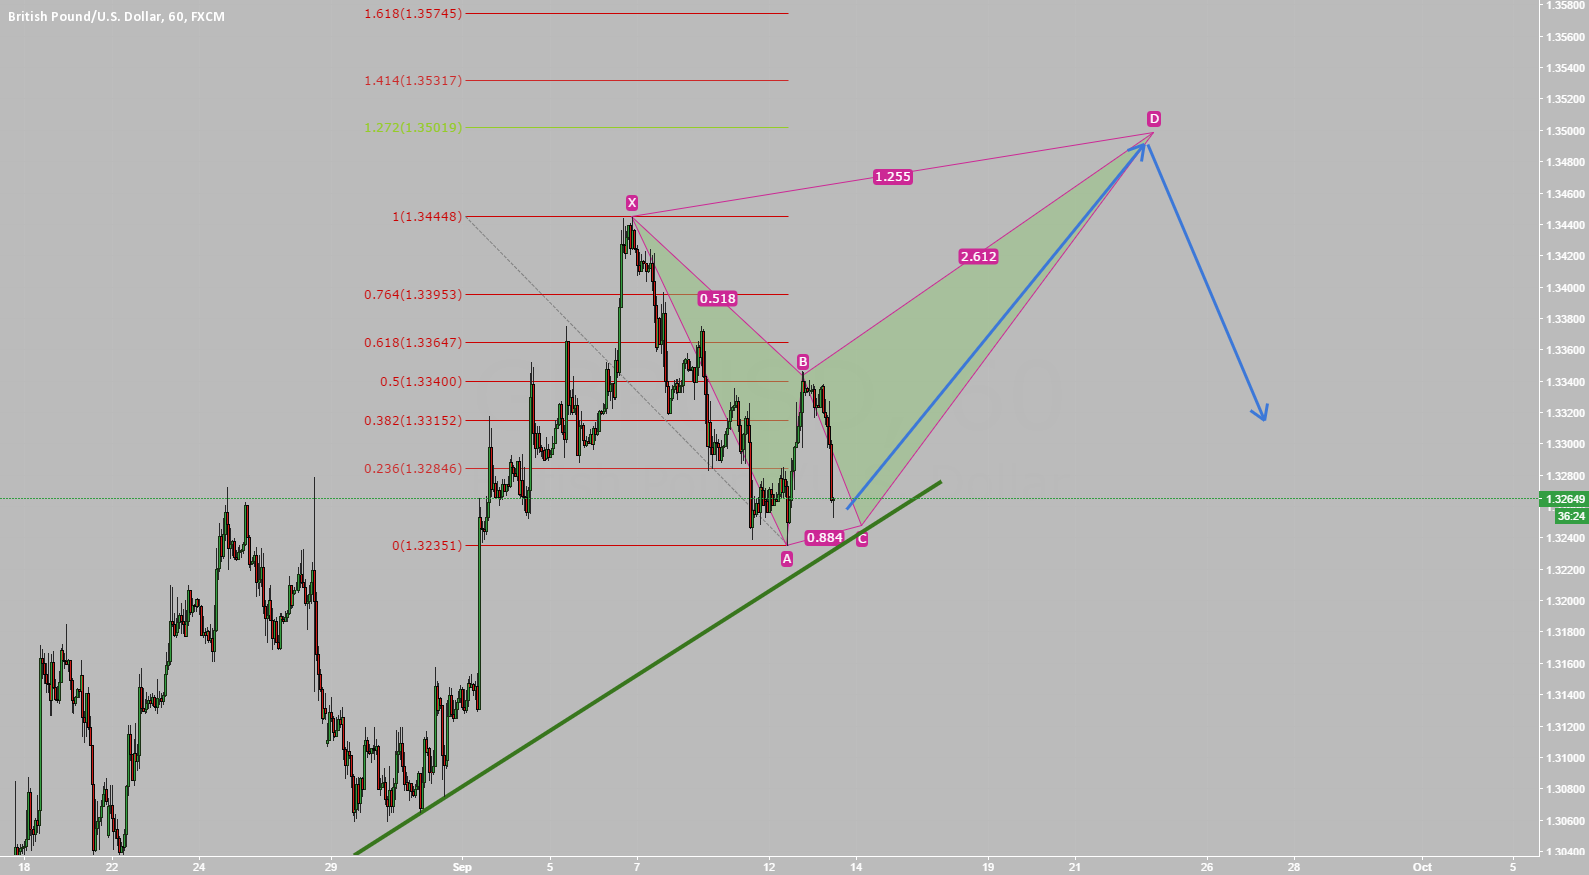 GBP/USD Bearish Bat Pattern